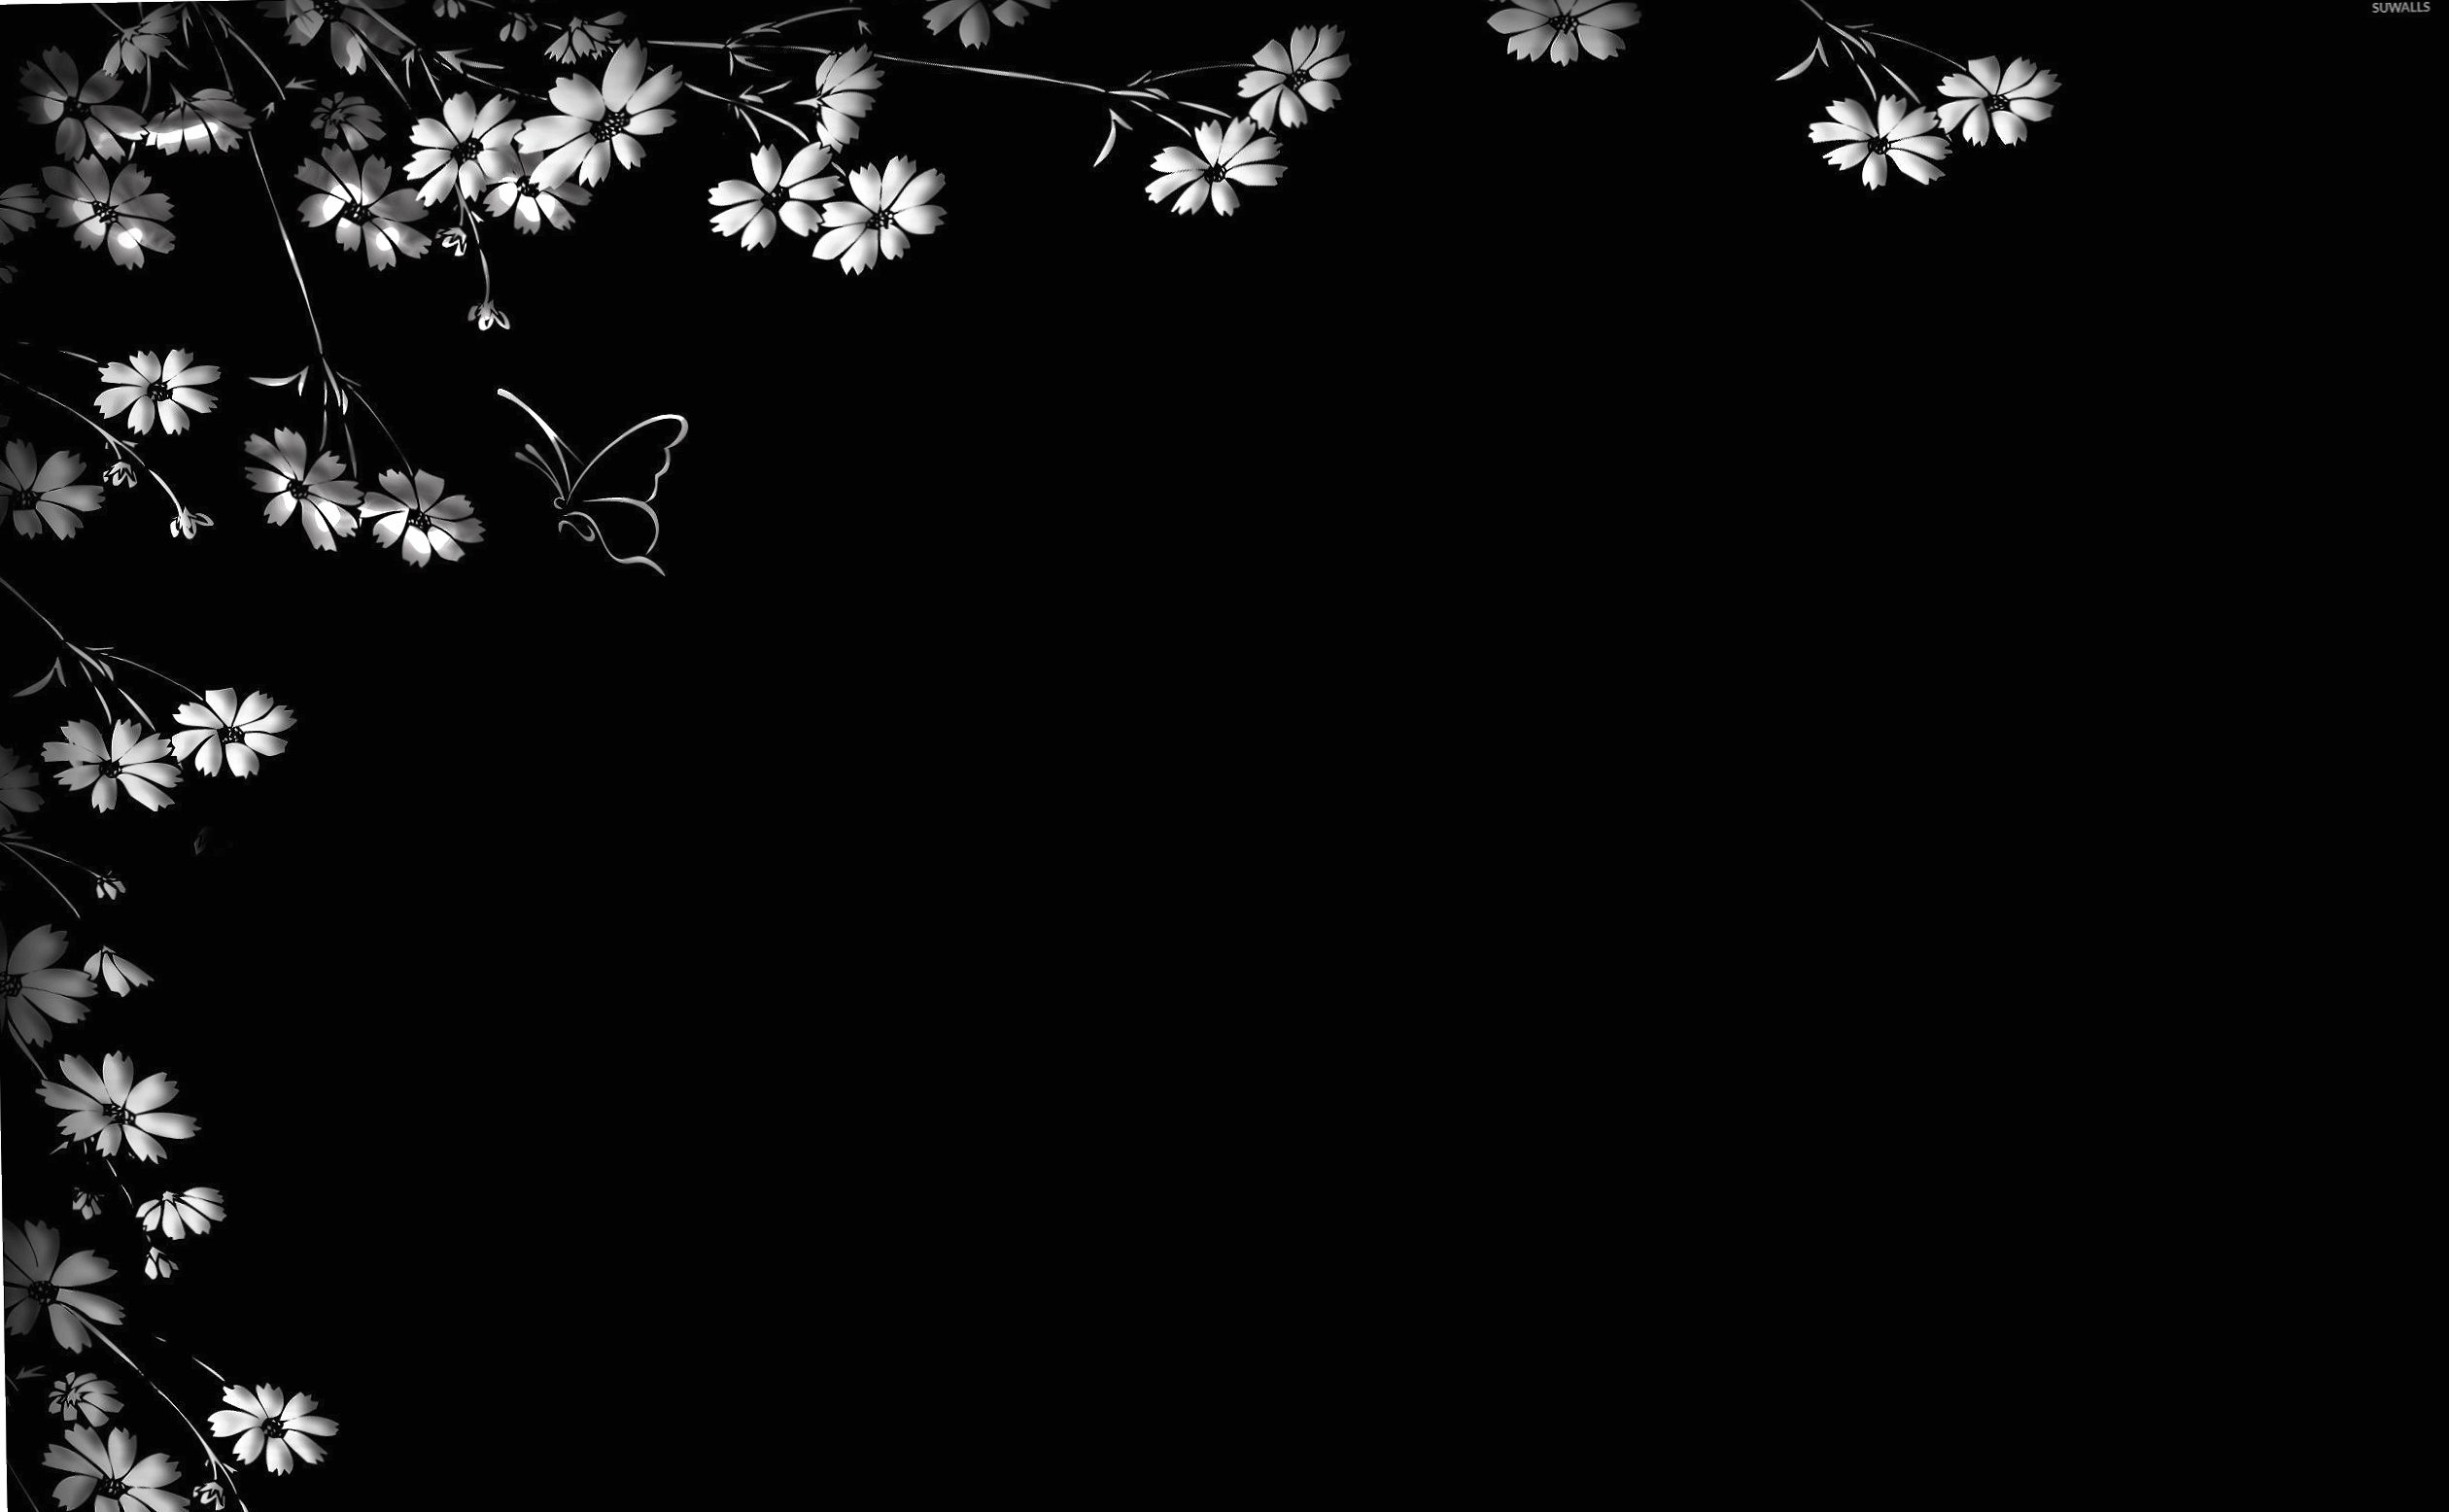 Flowers on the black wall wallpapers HD quality